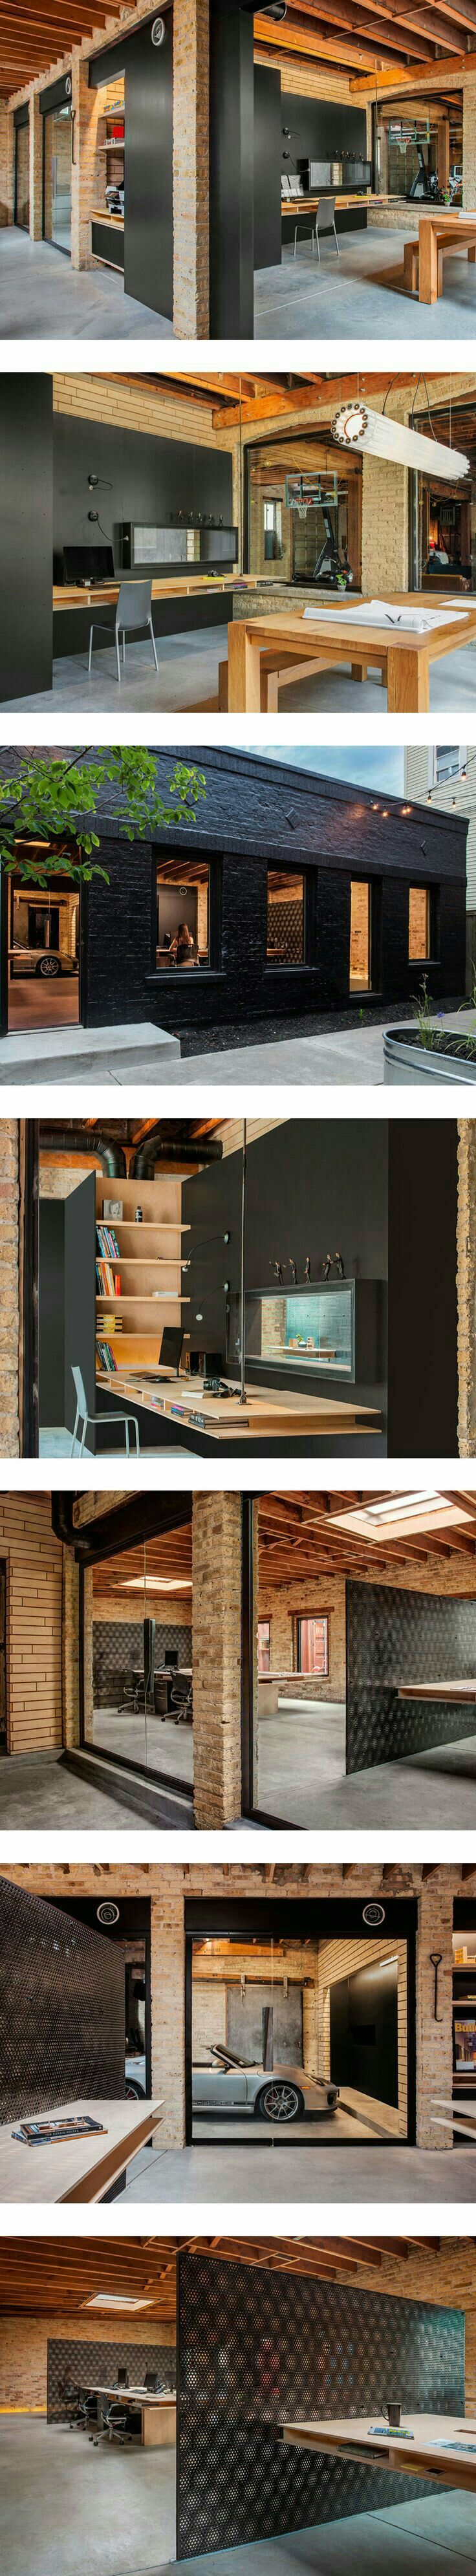 """Almost every surface is storage, for """"desk renting""""?"""